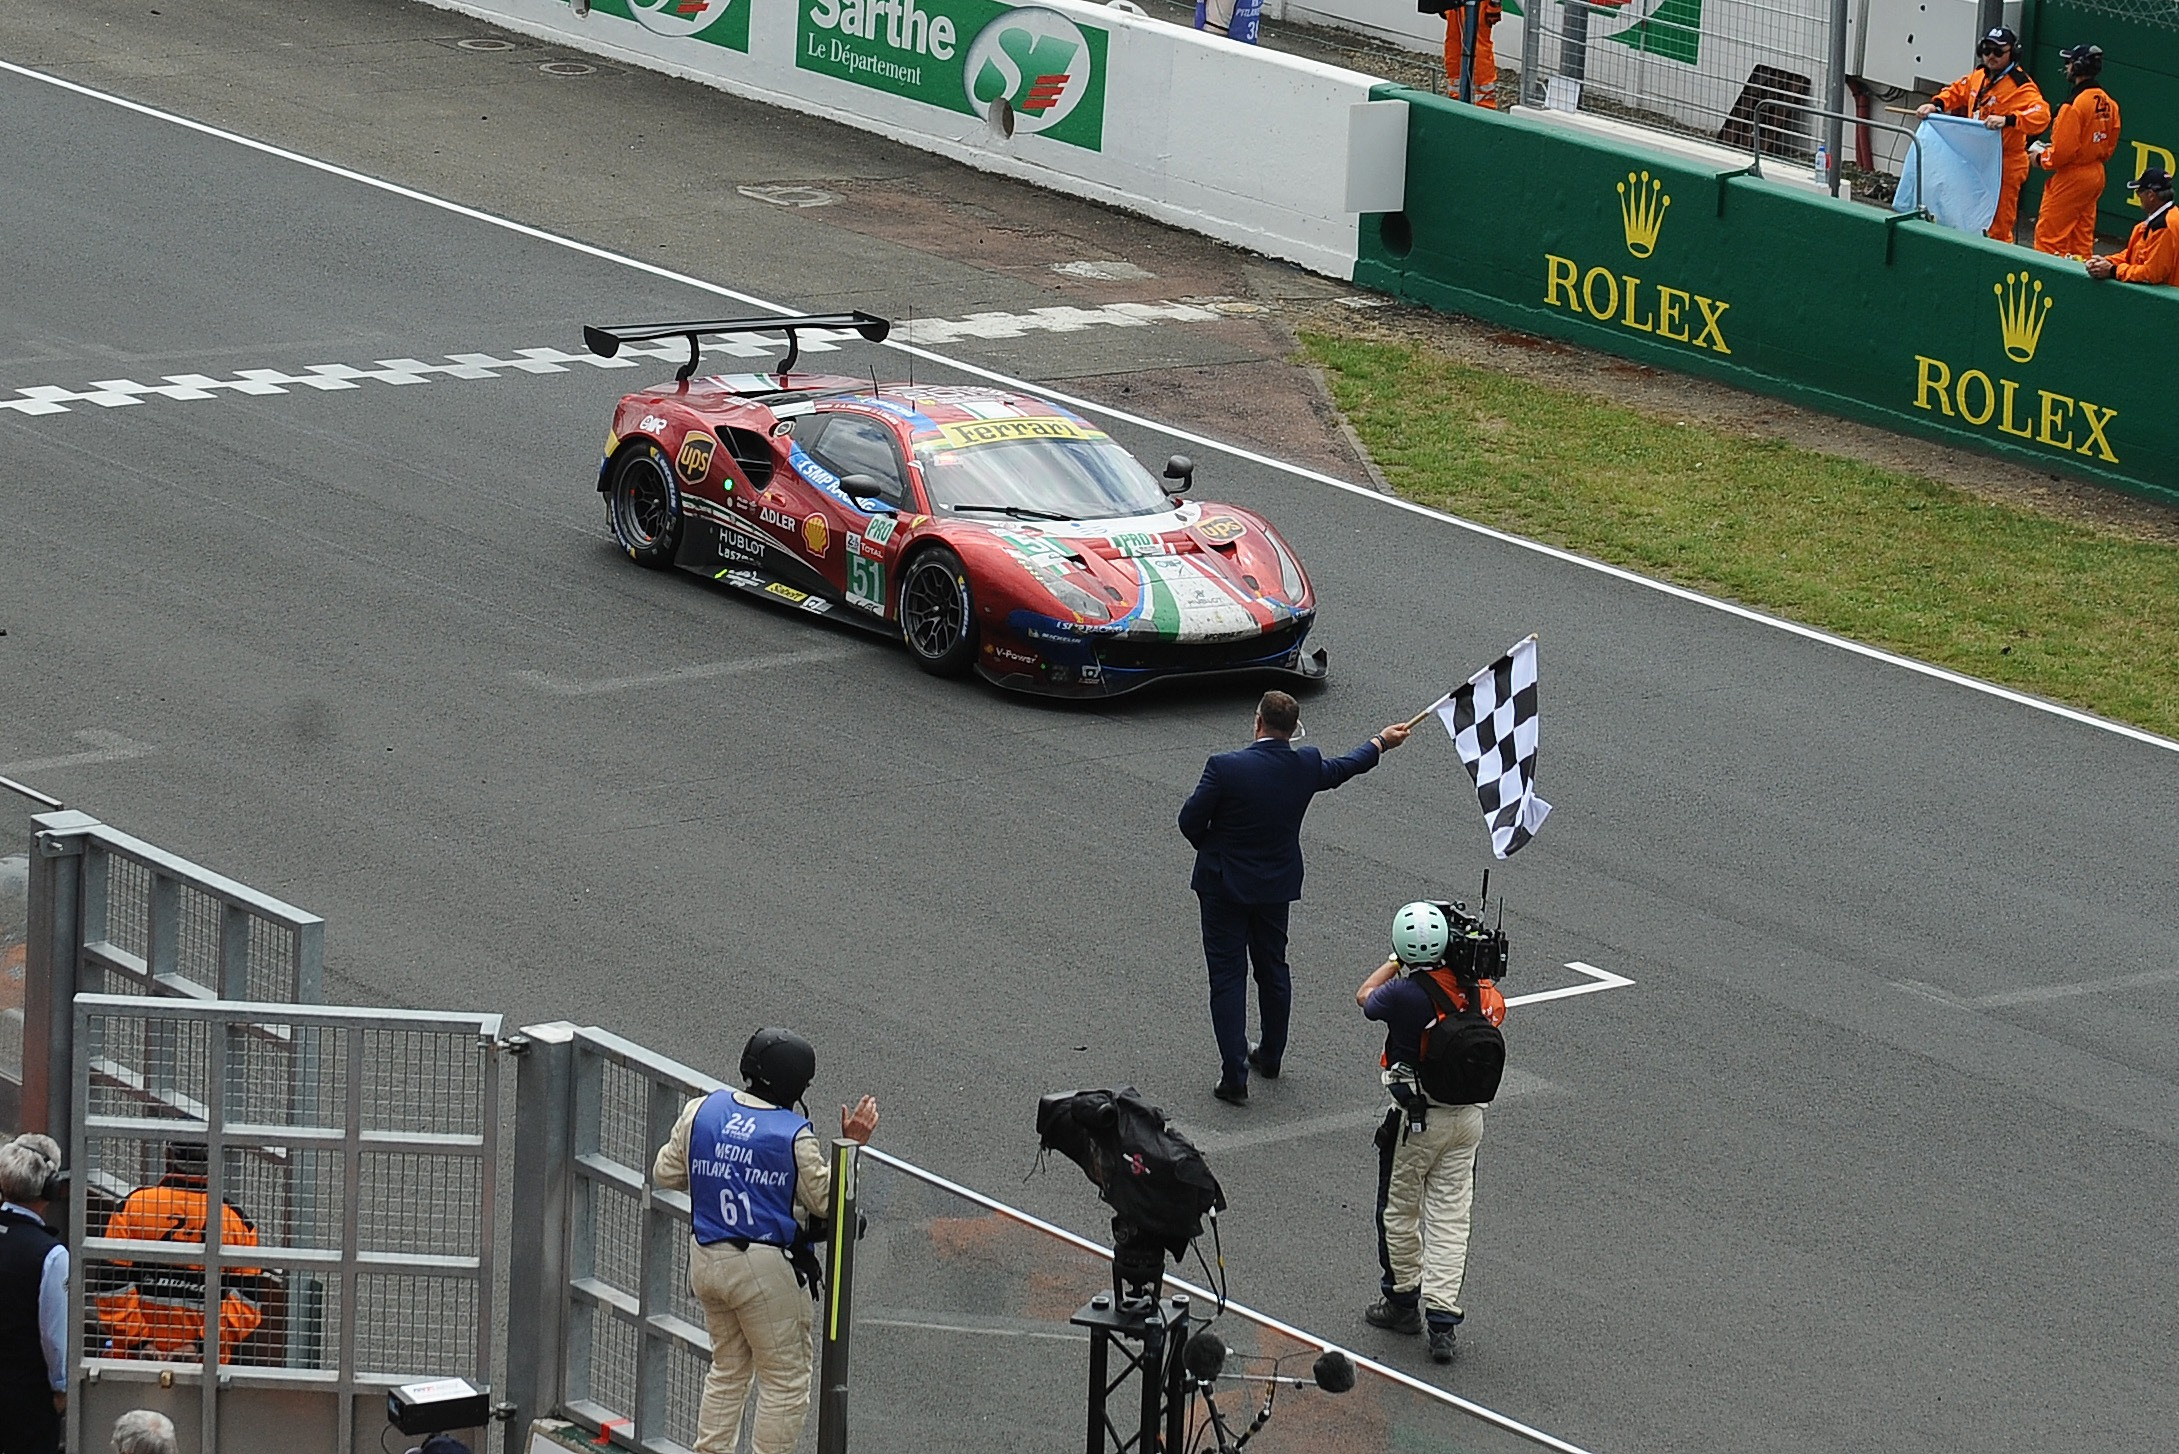 Ferrari's most recent Le Mans success in the GTE-Pro class with AF Corse came in 2019